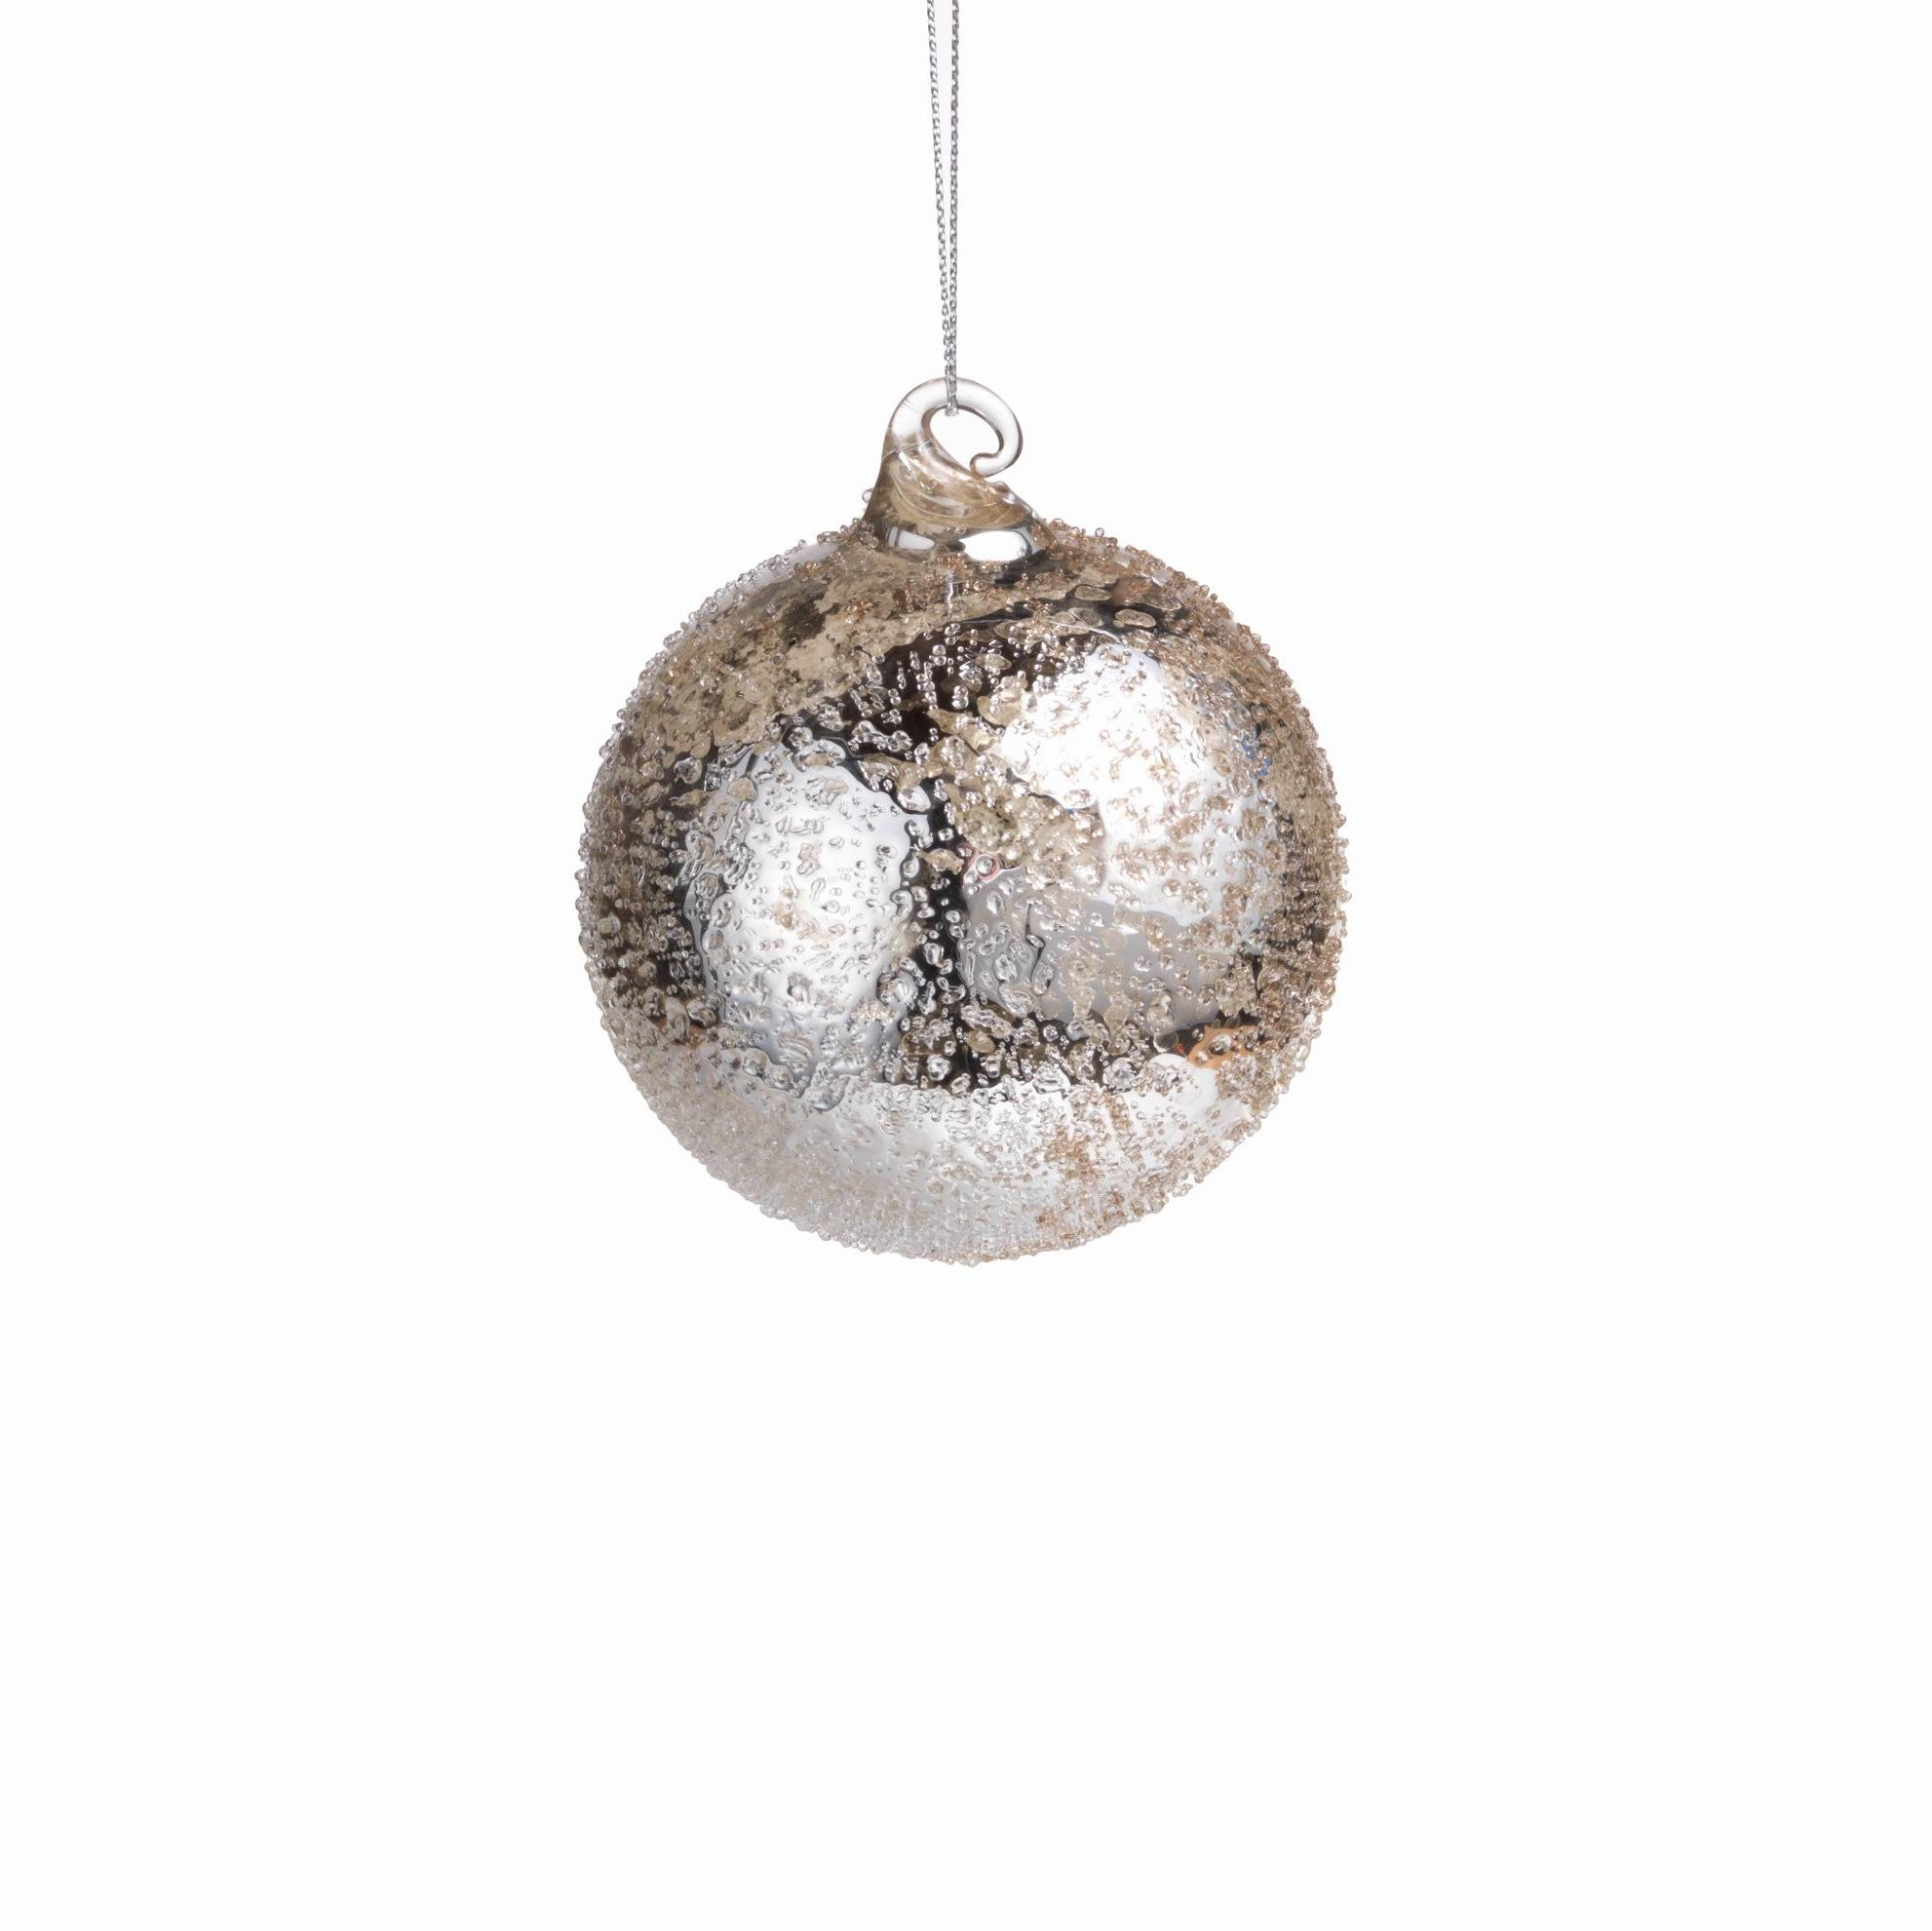 Antique Silver Round Ornaments - CARLYLE AVENUE